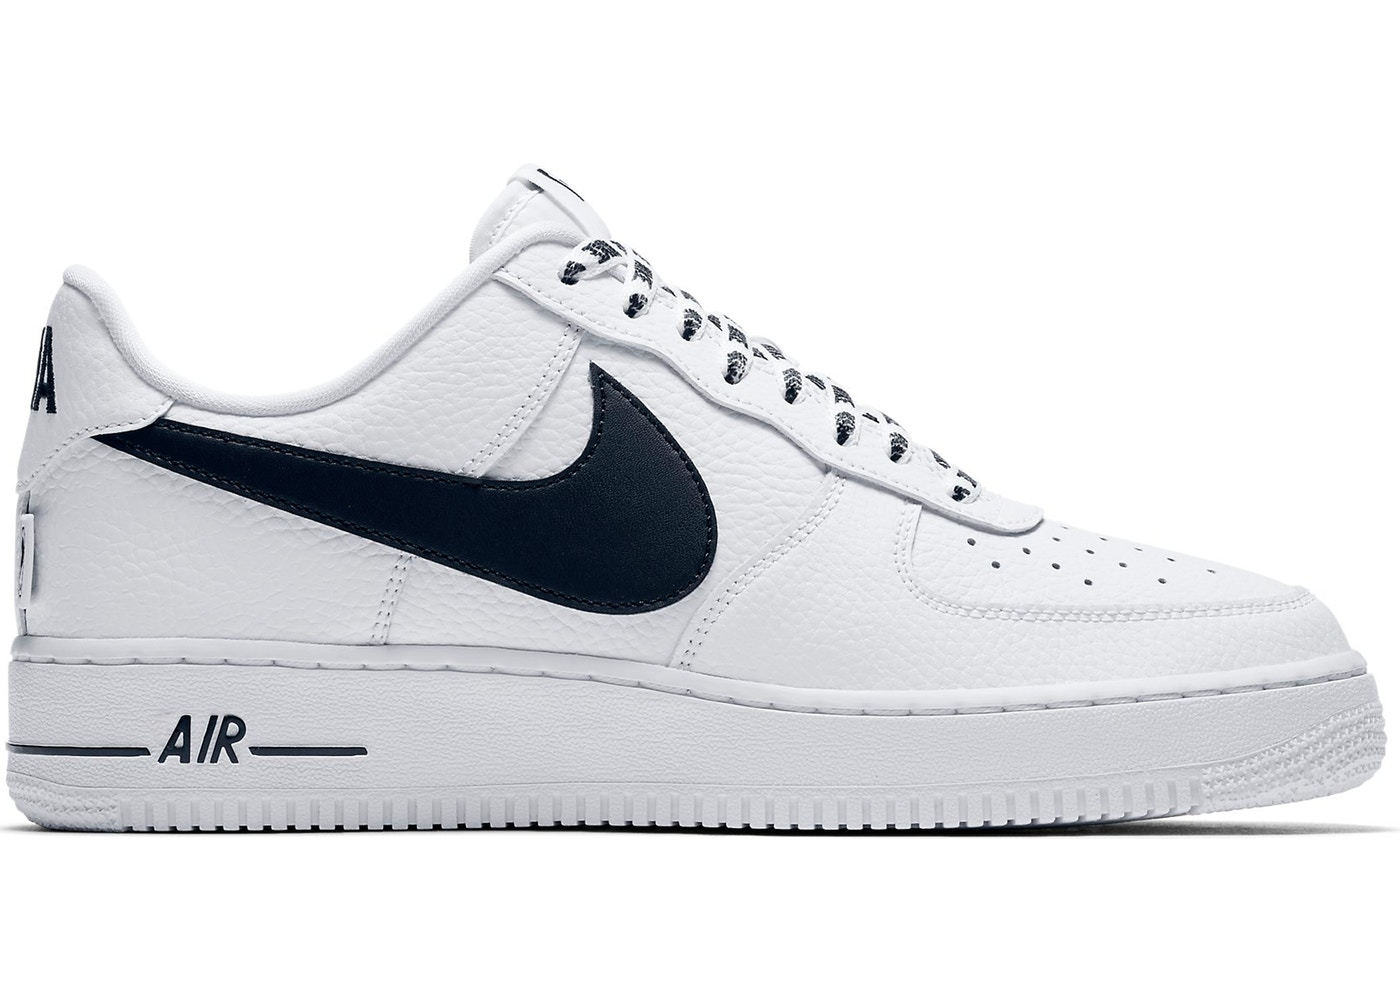 finest selection b9c35 3bd14 Sell. or Ask. Size  11. View All Bids. Air Force 1 Low NBA White Black